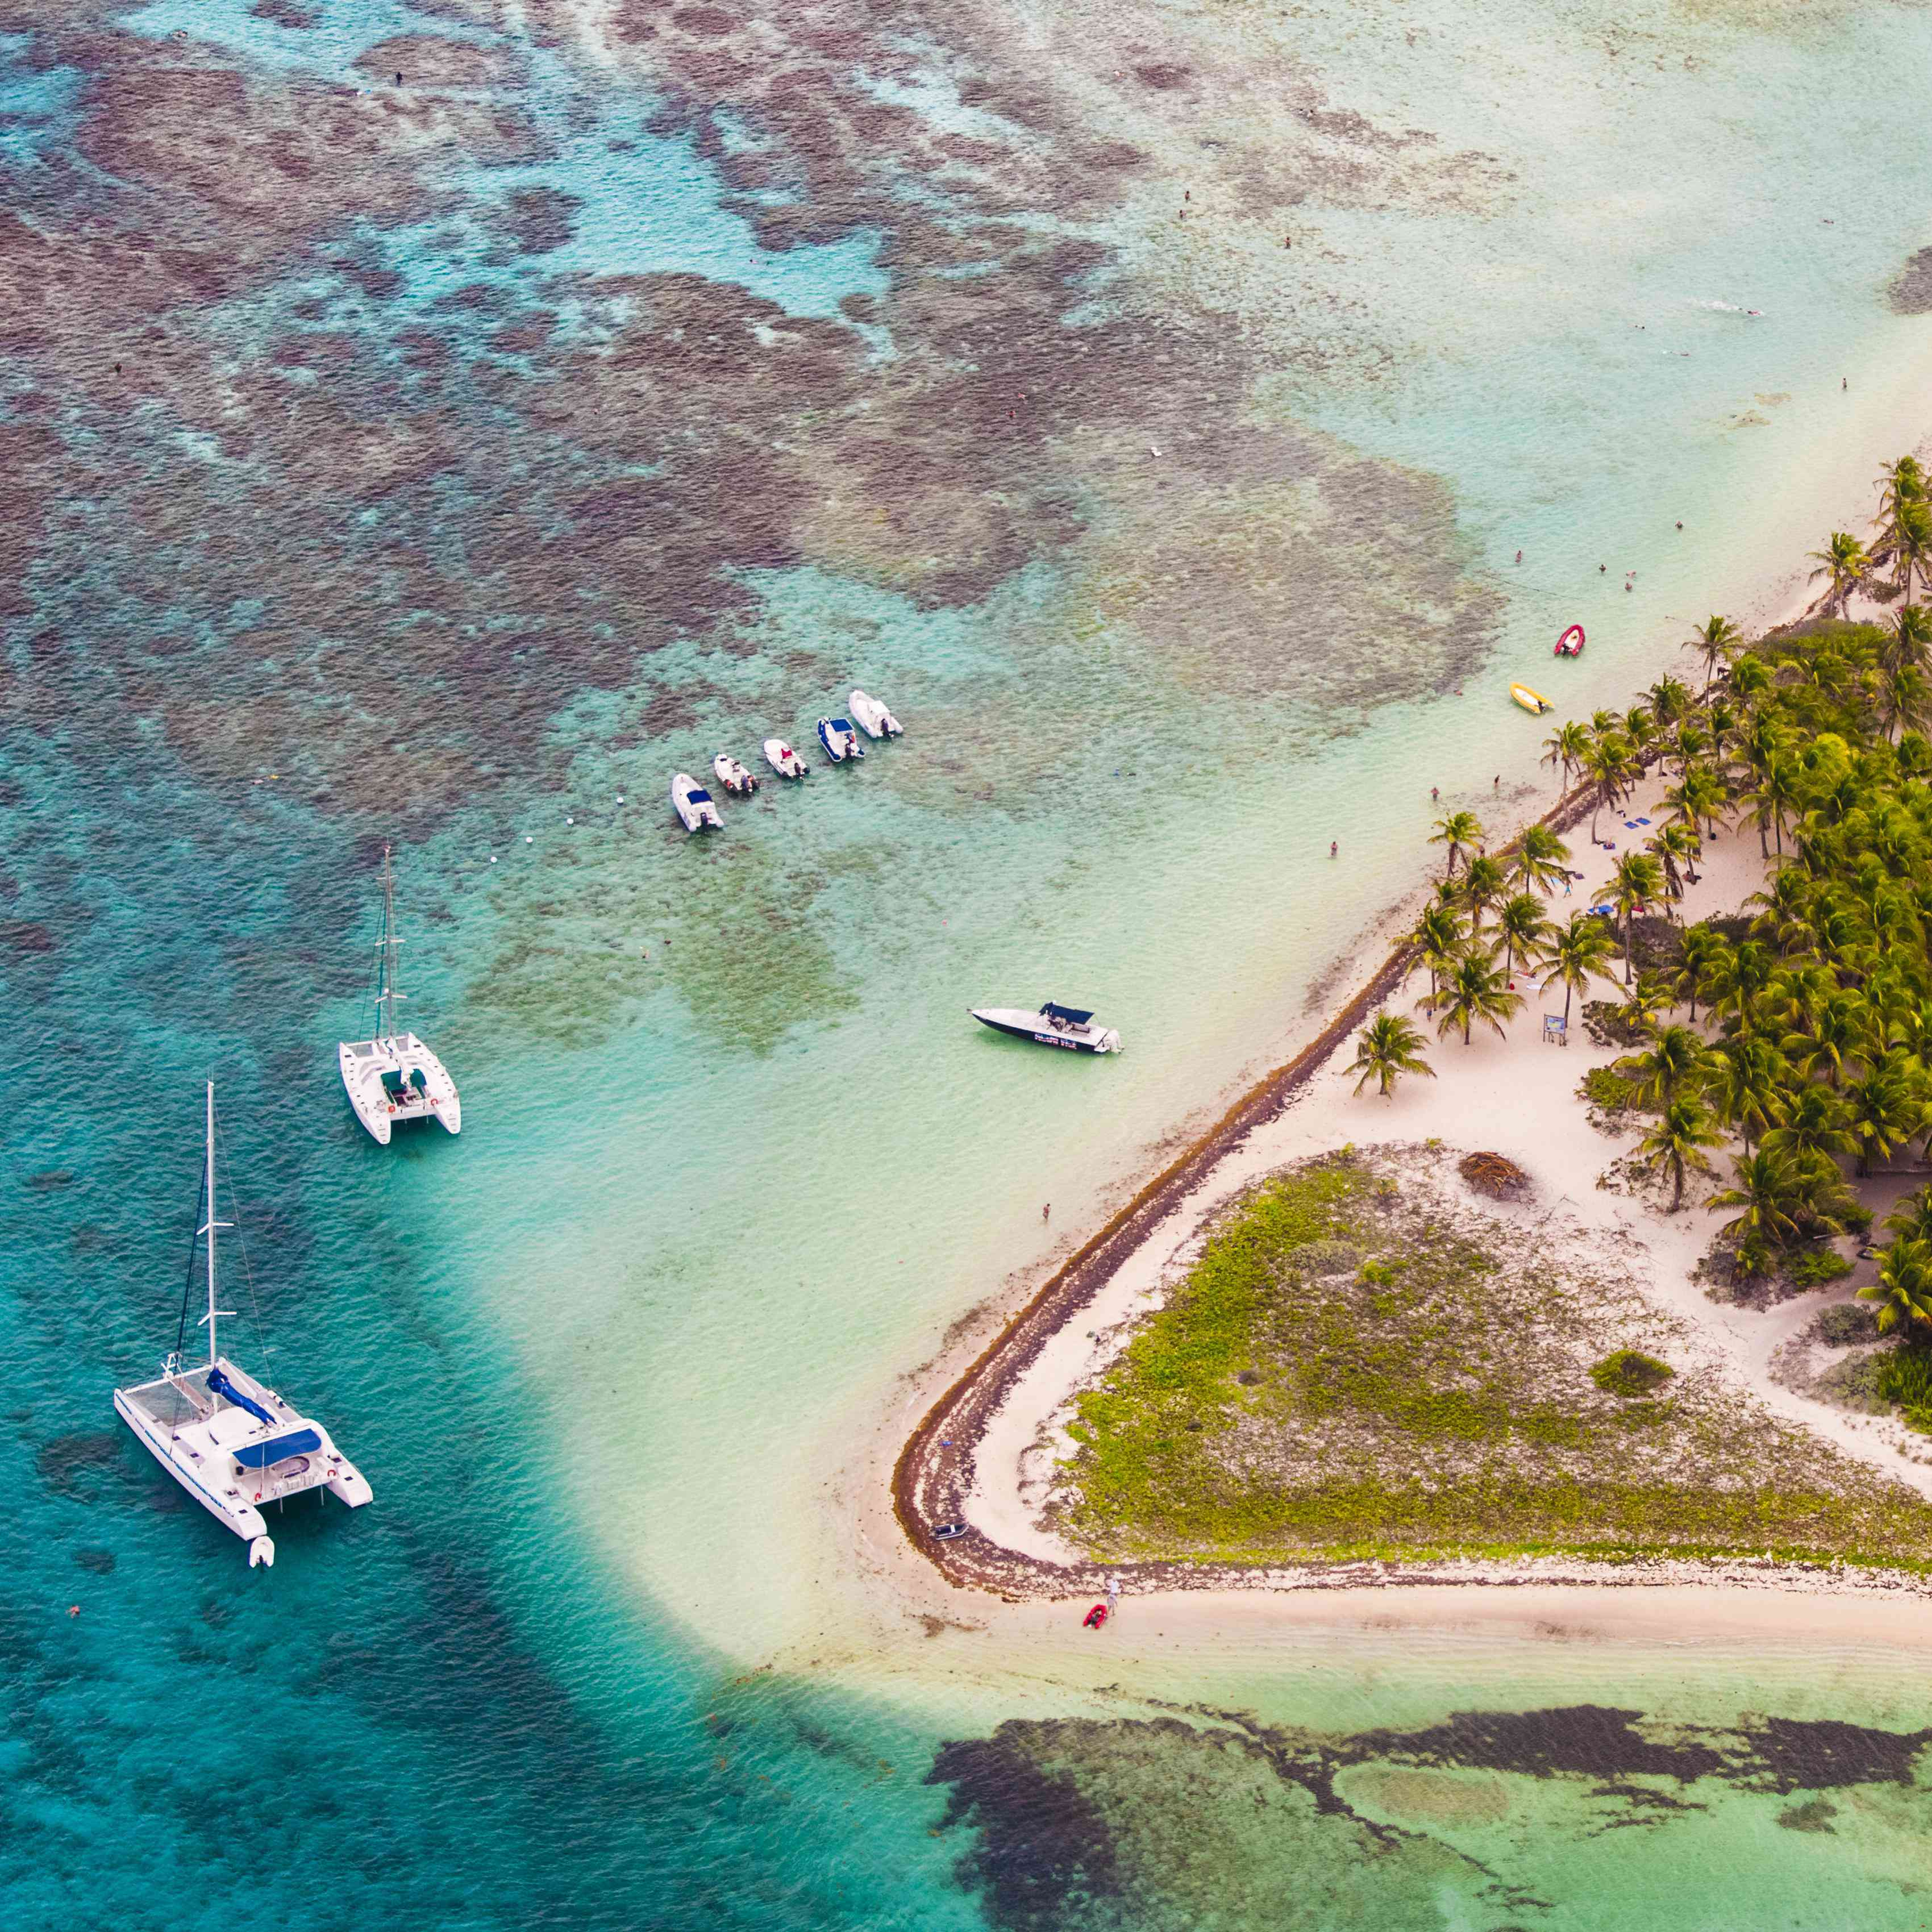 Guadeloupe Beach: Why Guadeloupe Should Be High On Your Honeymoon List